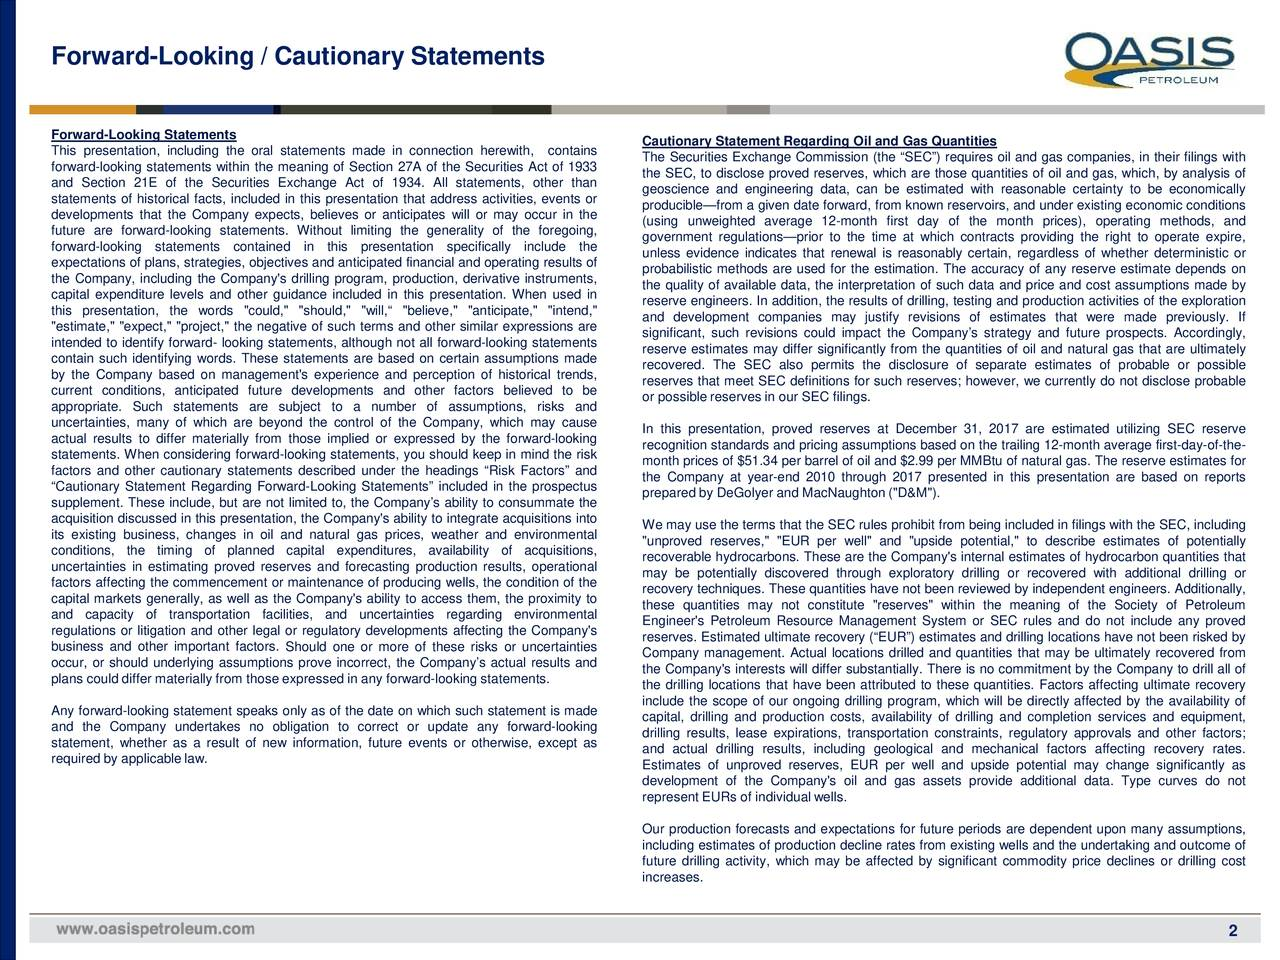 """Forward-Looking Statements This presentation, including the oral statements made in connection herewith, contains Cautionary Statement Regarding Oil and Gas Quantities The Securities Exchange Commission (the """"SEC"""") requires oil and gas companies, in their filings with forward-looking statements within the meaning of Section 27A of the Securities Act of 1933 the SEC, to disclose proved reserves, which are those quantities of oil and gas, which, by analysis of and Section 21E of the Securities Exchange Act of 1934. All statements, other than geoscience and engineering data, can be estimated with reasonable certainty to be economically statements of historical facts, included in this presentation that address activities, events or developments that the Company expects, believes or anticipates will or may occur in the producible—from a given date forward, from knownreservoirs,and under existing economic conditions (using unweighted average 12-month first day of the month prices), operating methods, and future are forward-looking statements. Without limiting the generality of the foregoing, government regulations—prior to the time at which contracts providing the right to operate expire, forward-looking statements contained in this presentation specifically include the unless evidence indicates that renewal is reasonably certain, regardless of whether deterministic or expectationsof plans, strategies, objectivesand anticipatedfinancialand operating results of the Company, including the Company's drilling program, production, derivative instruments, probabilistic methods are used for the estimation. The accuracy of any reserve estimate depends on the quality of available data, the interpretation of such data and price and cost assumptions made by capital expenditure levels and other guidance included in this presentation. When used in reserve engineers. In addition, the results of drilling, testing and production activities of the exploration this presentation, the words """